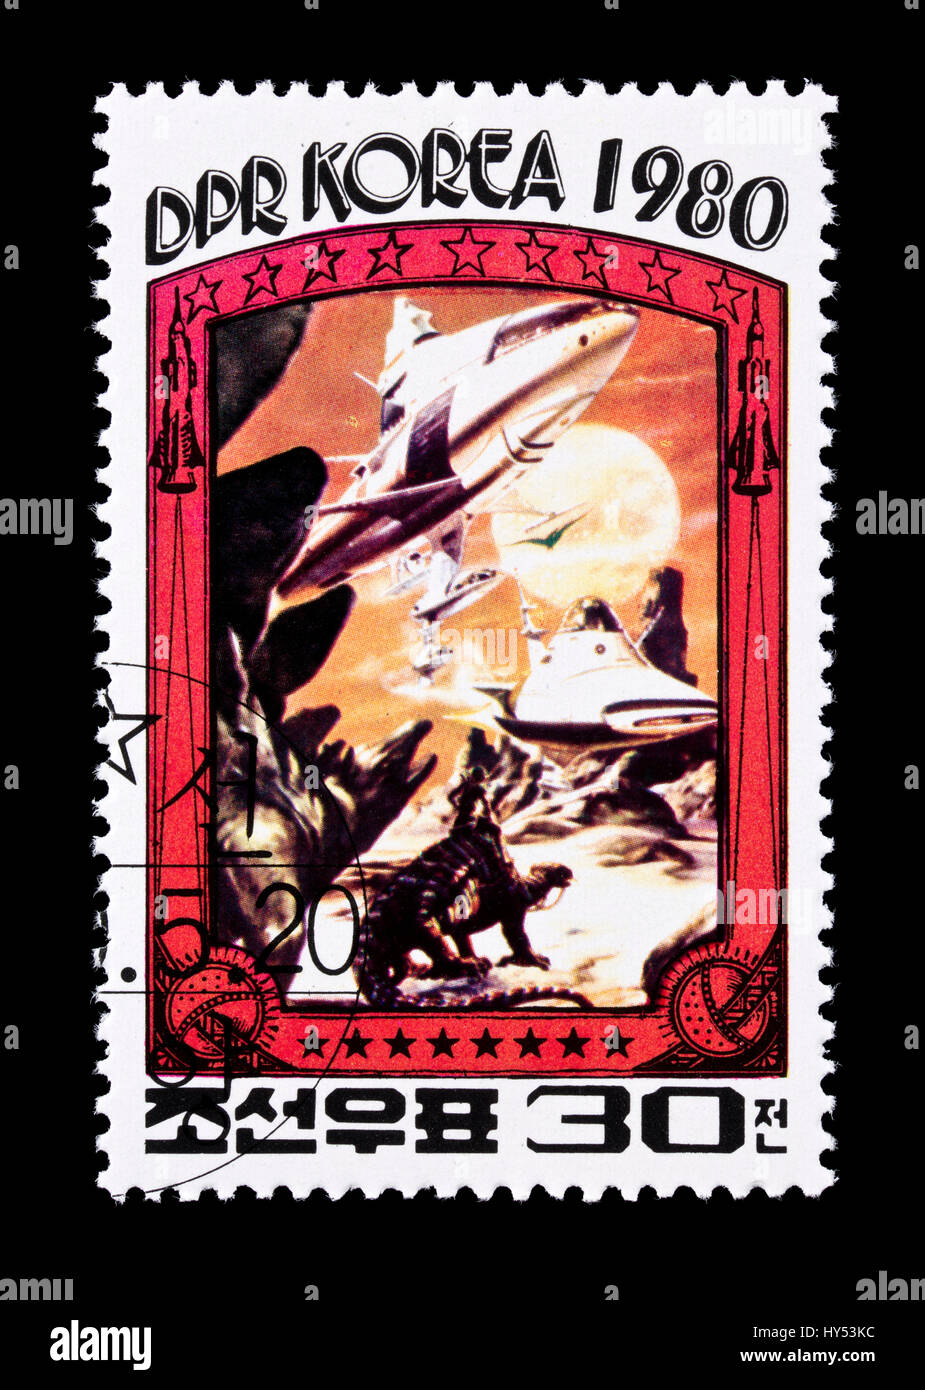 Postage stamp from North Korea depicting a spaceship landing on another planet being greeted by dinosaurs - Stock Image